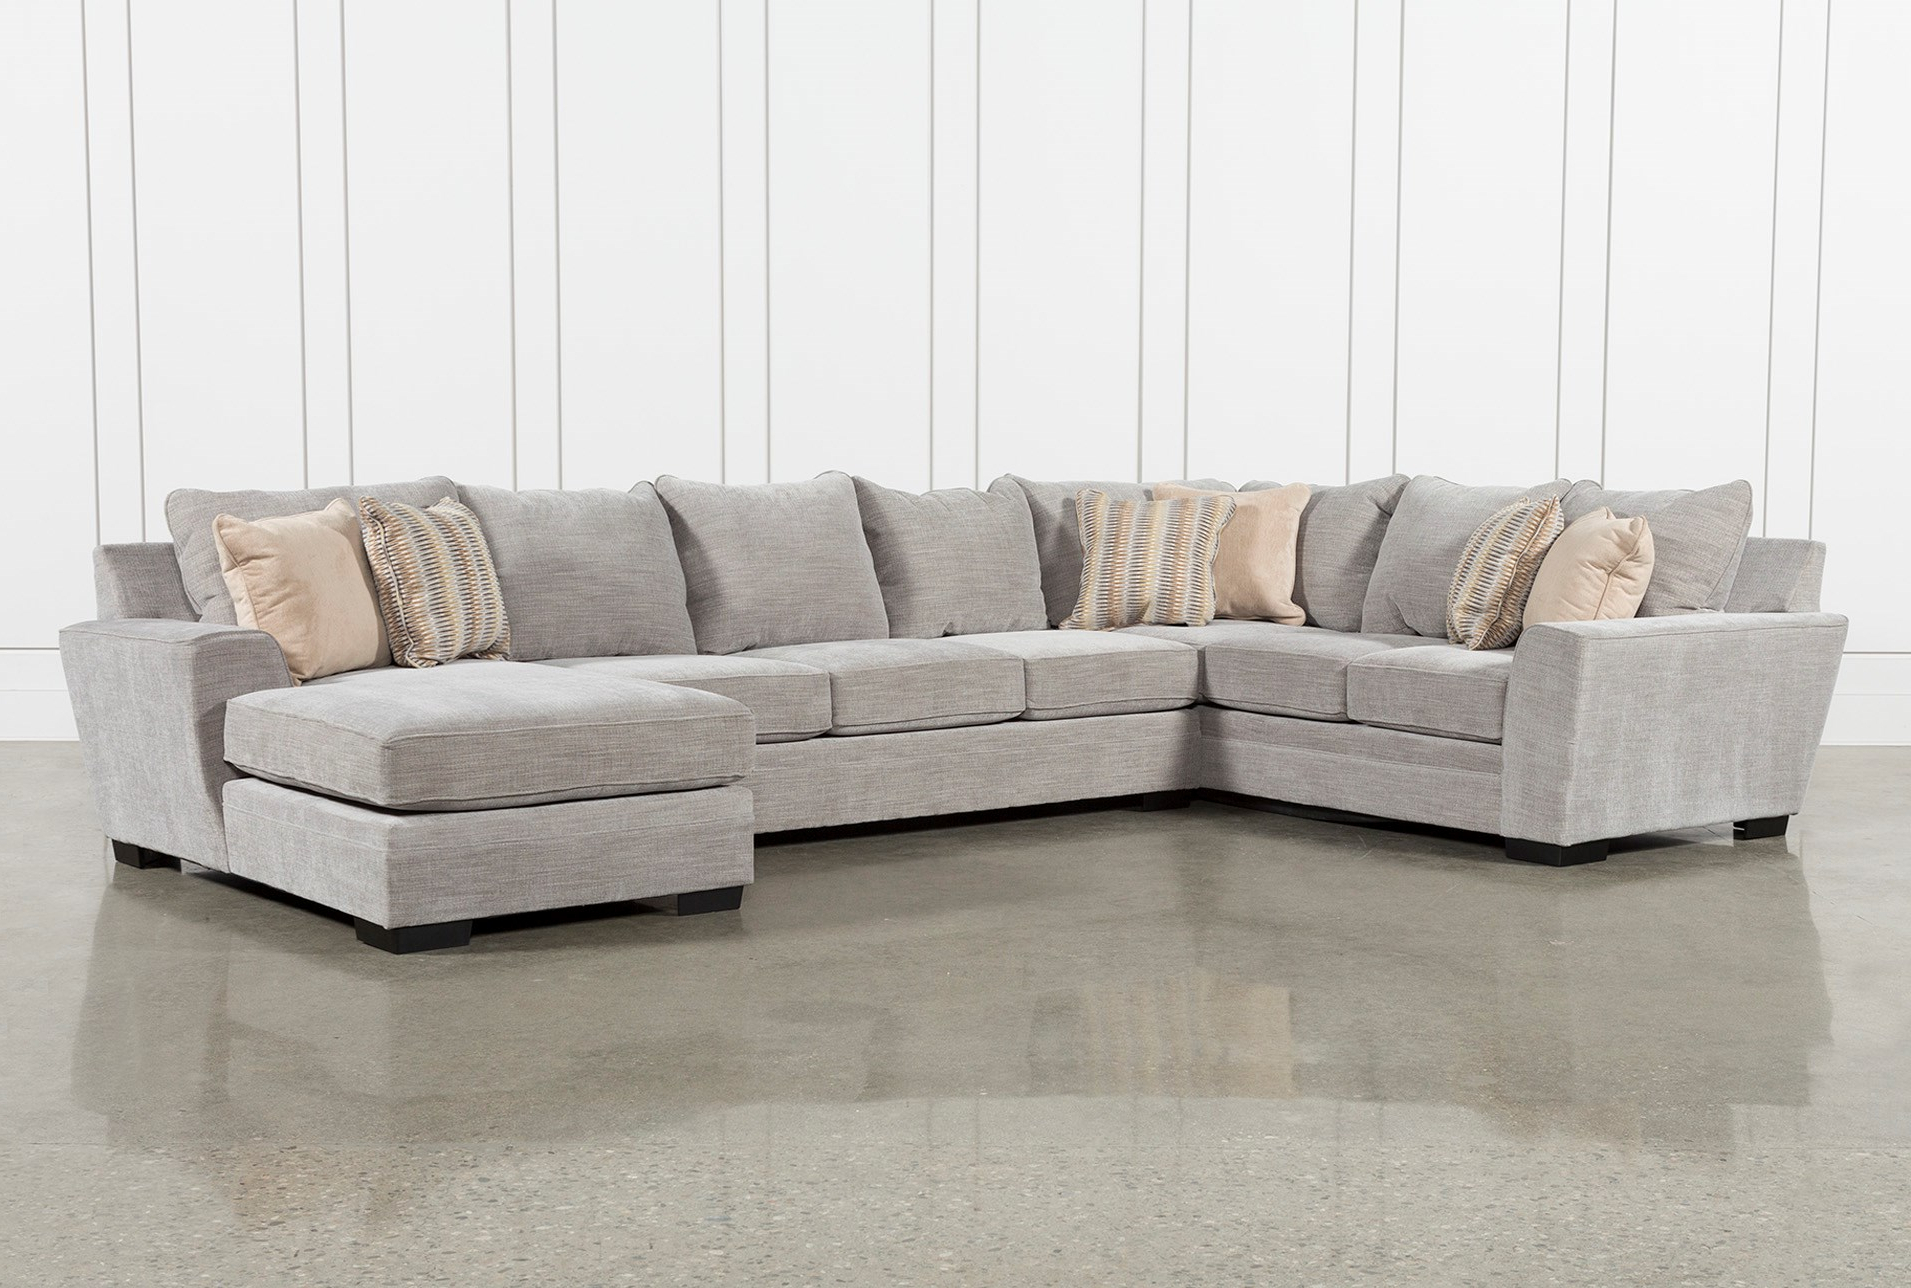 2019 Malbry Point 3 Piece Sectionals With Raf Chaise Intended For Delano Smoke 3 Piece Sectional Living Spaces – Locsbyhelenelorasa (Gallery 6 of 20)